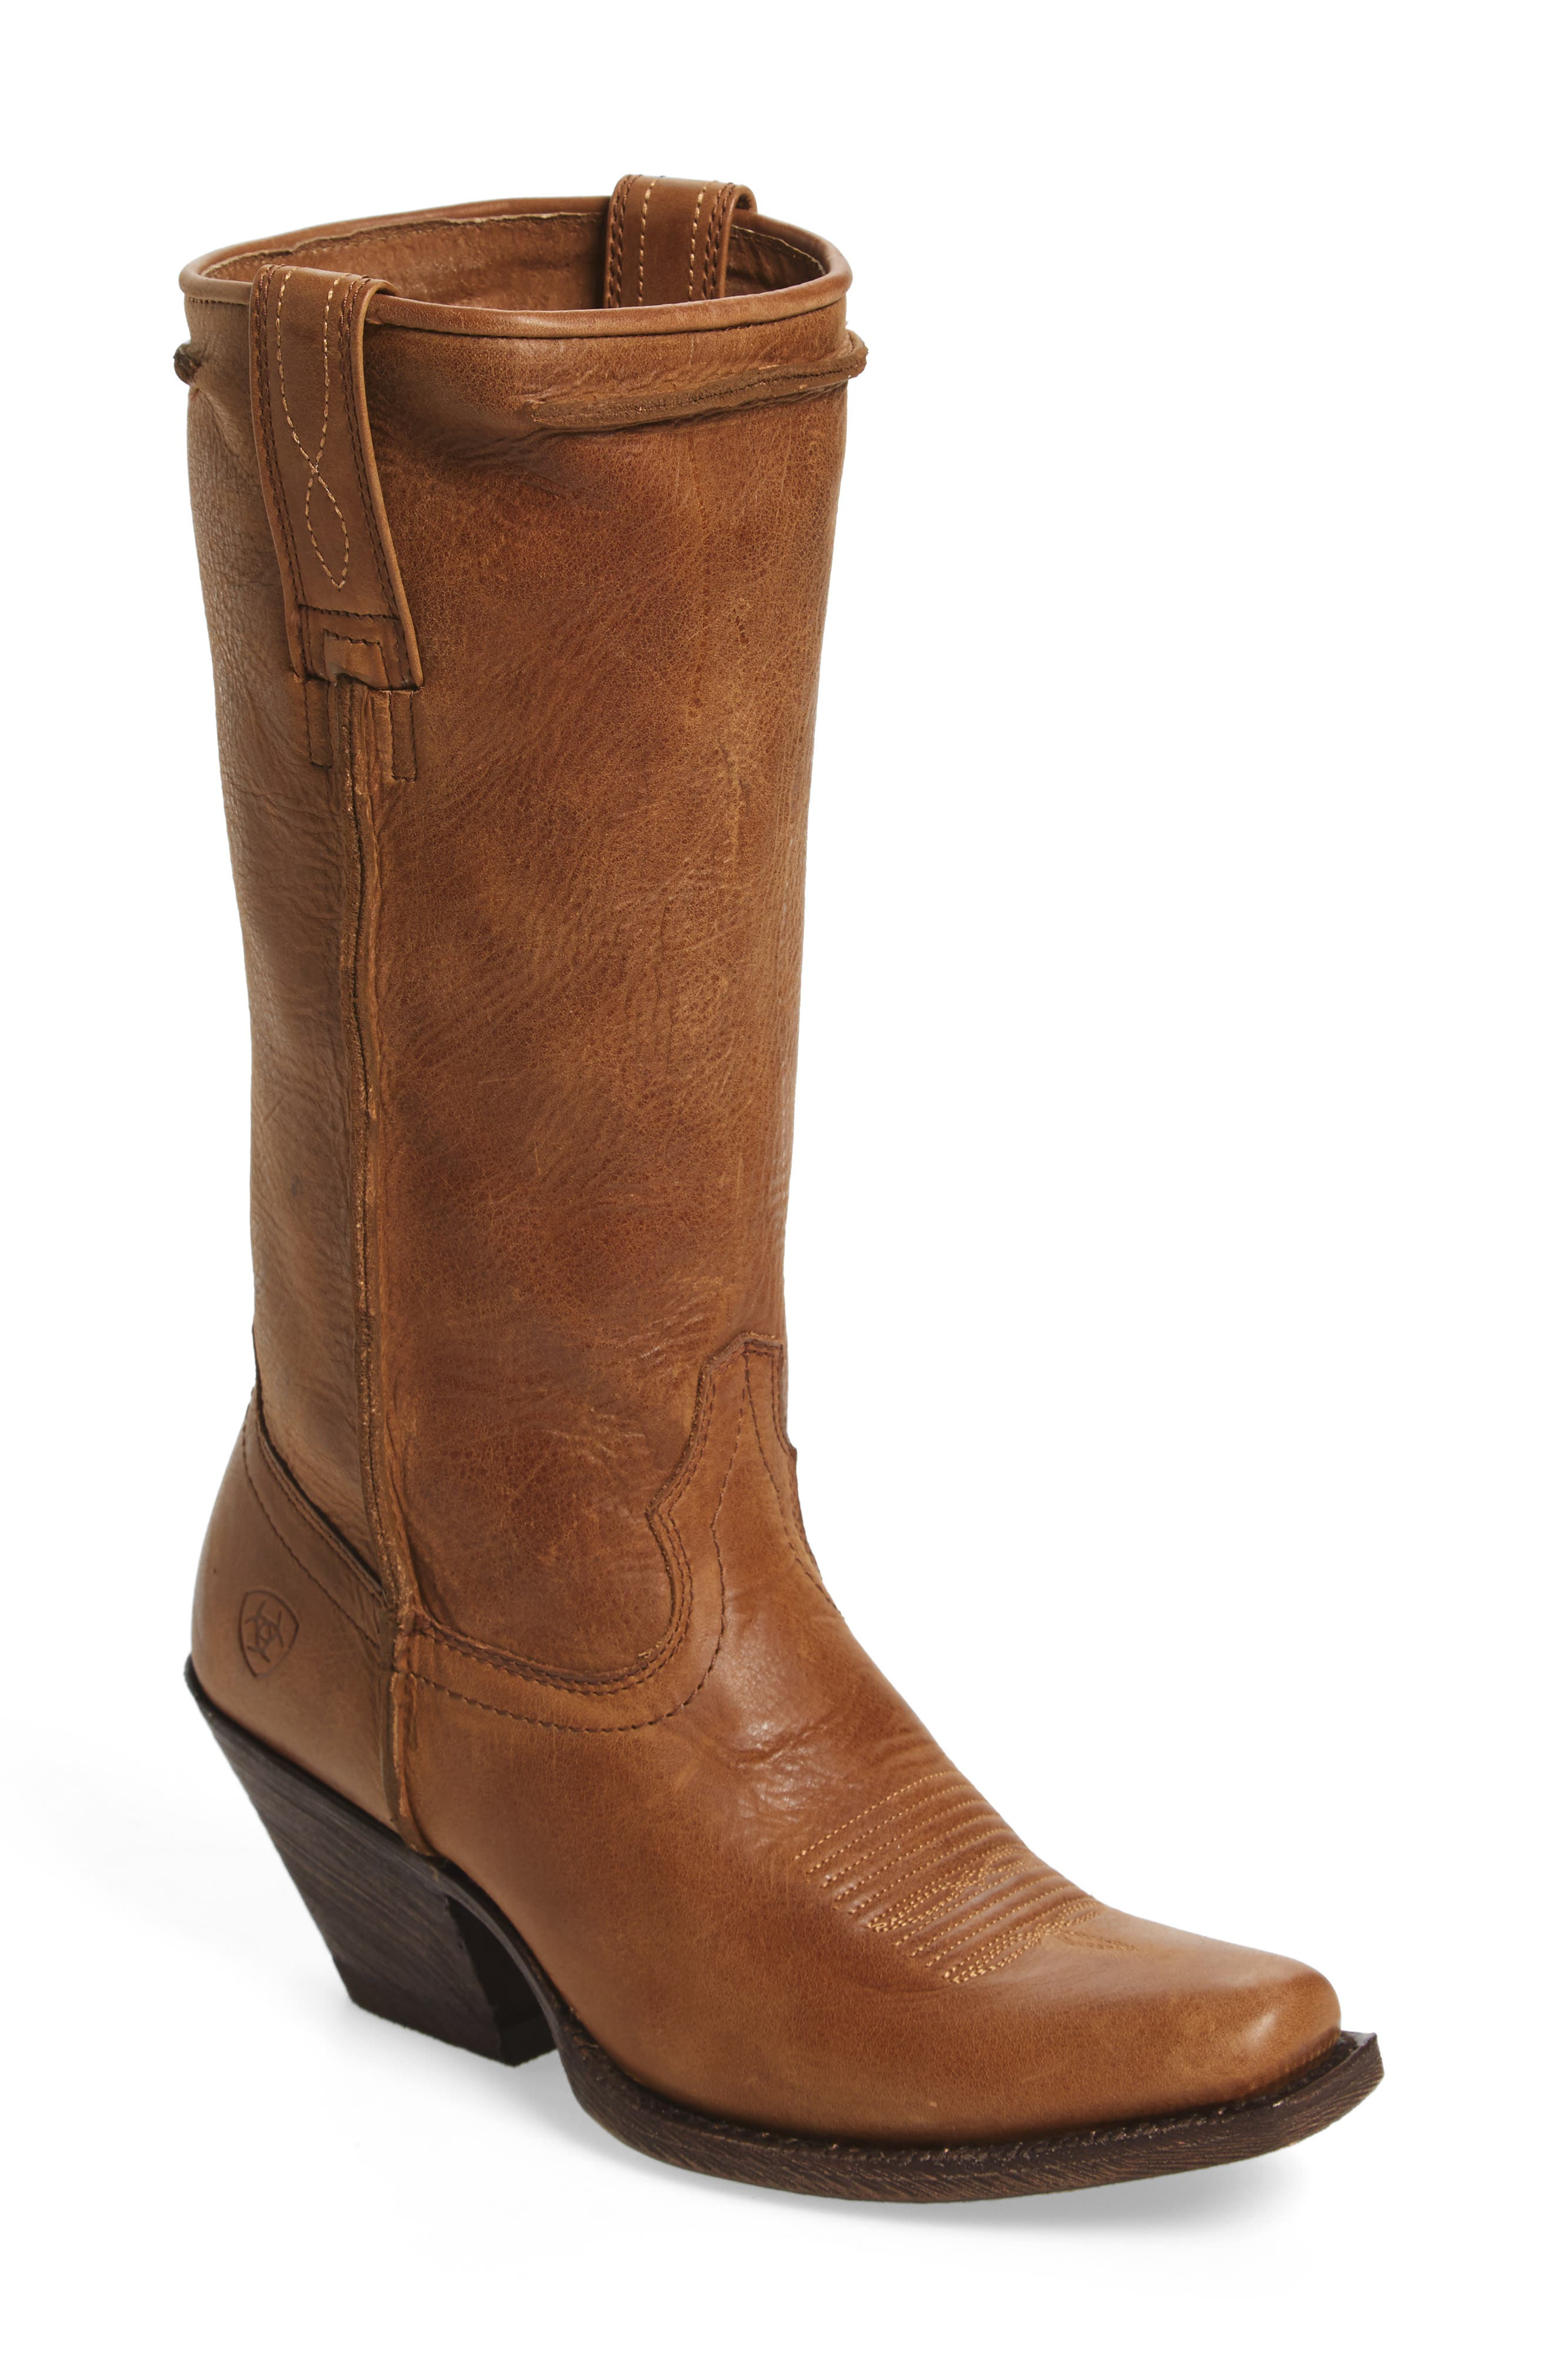 Rowan Stovepipe Western Boot,                         Main,                         color, Southern Tan Leather